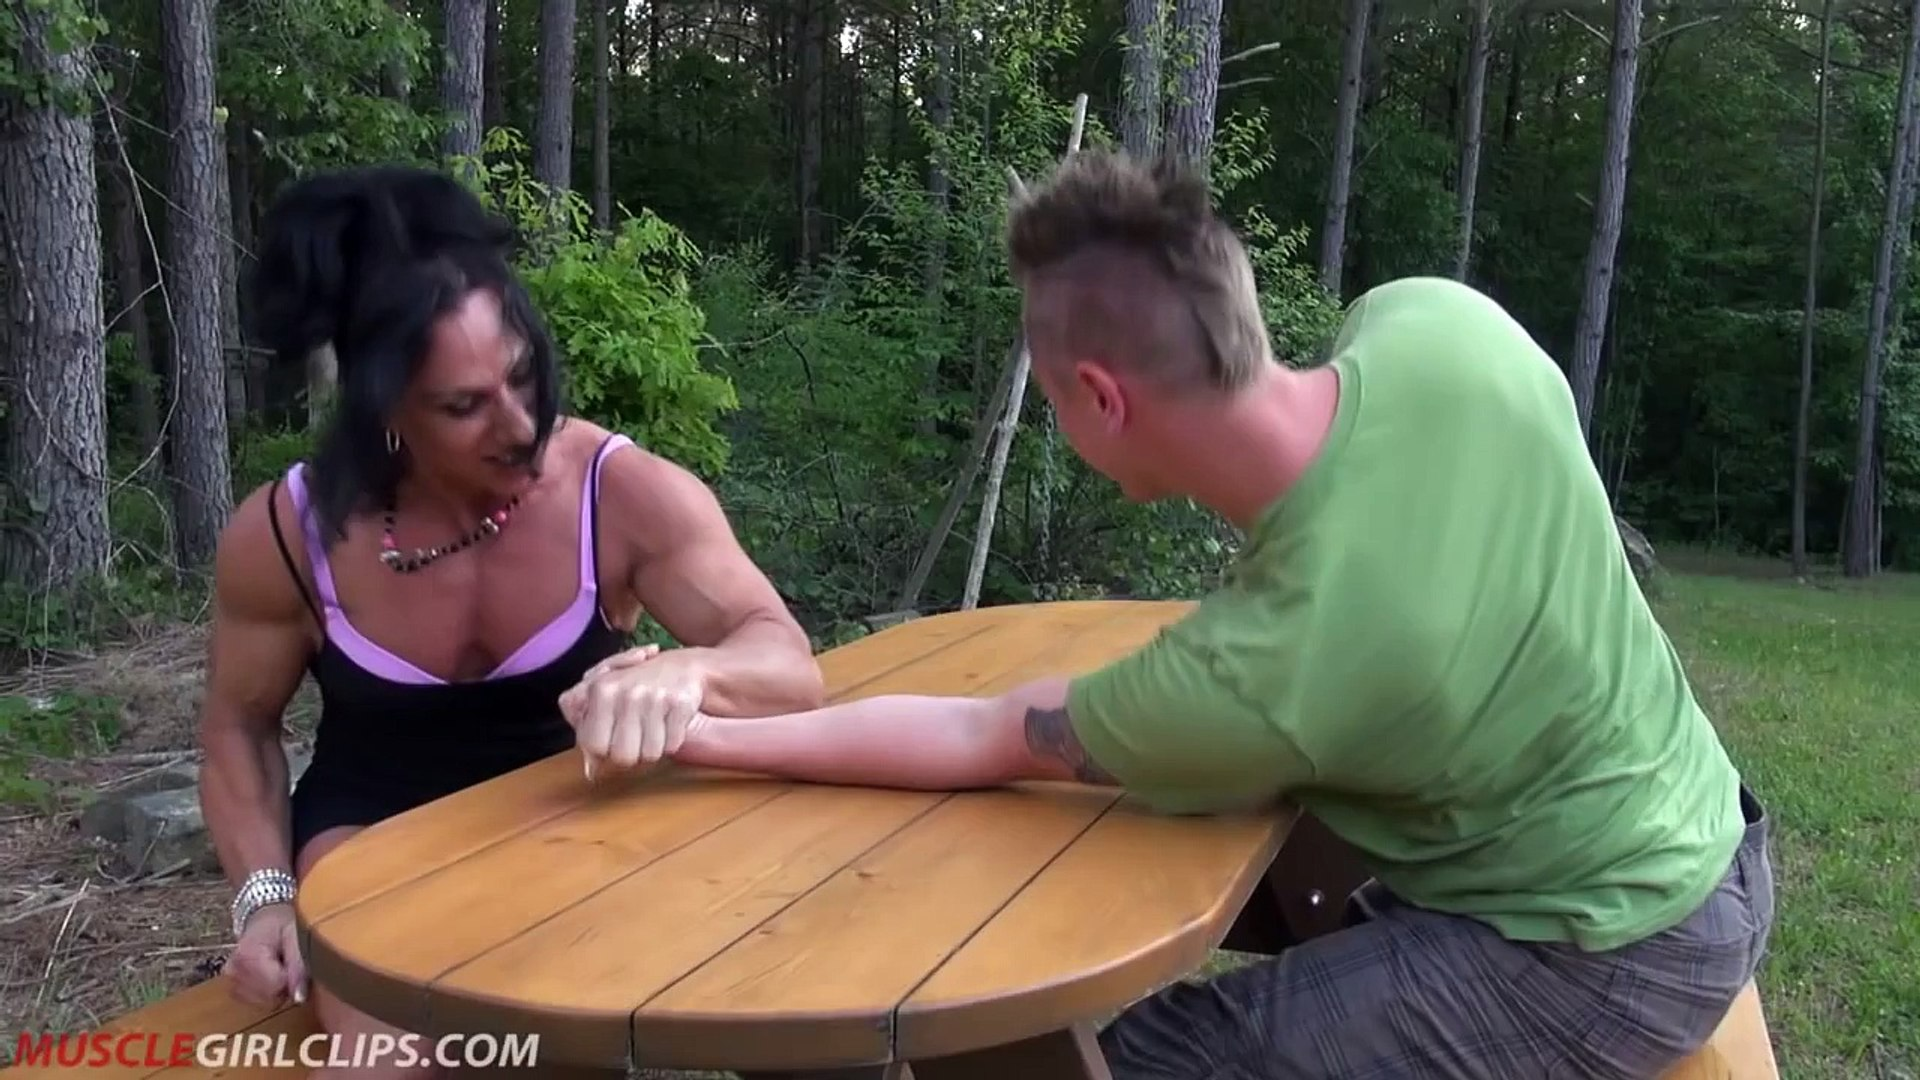 Muscle Girl Clips - Armwrestling, Lift and Carry, Bellypunching